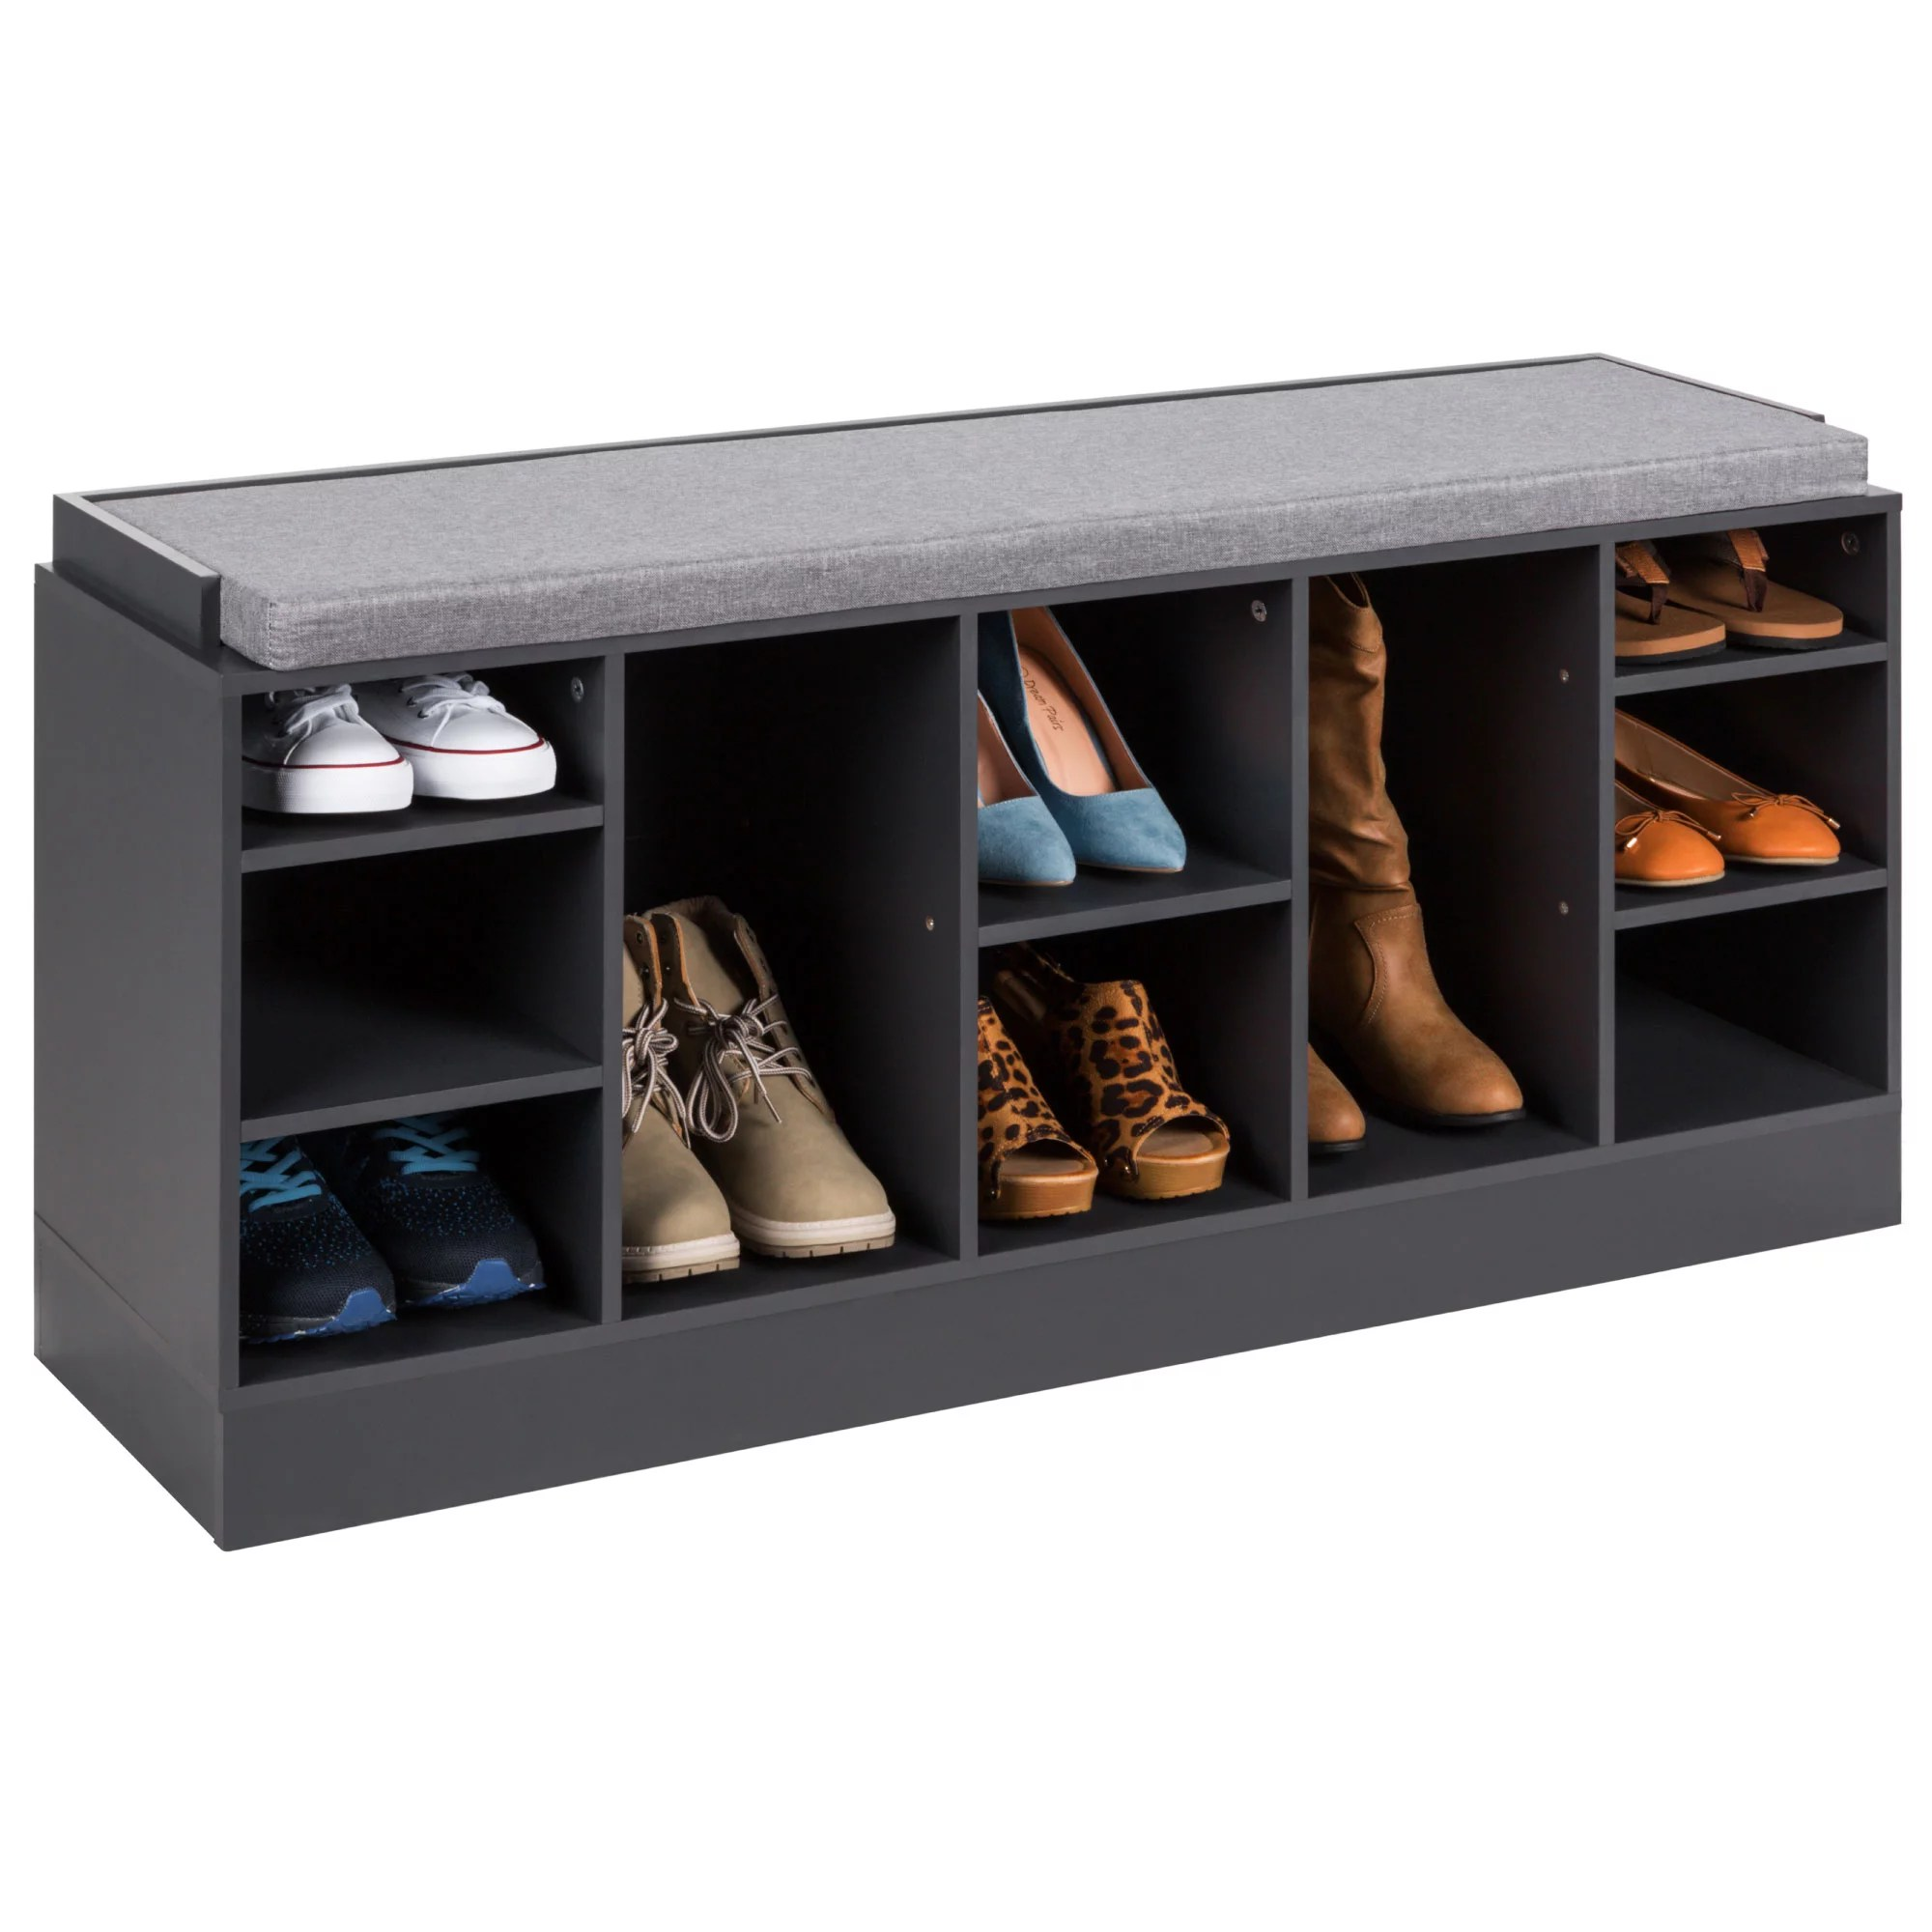 Best Choice Products 46in Shoe Storage Organization Rack Bench For Entryway Bedroom W Padded Seat 10 Cubbies Gray Walmart Com Walmart Com